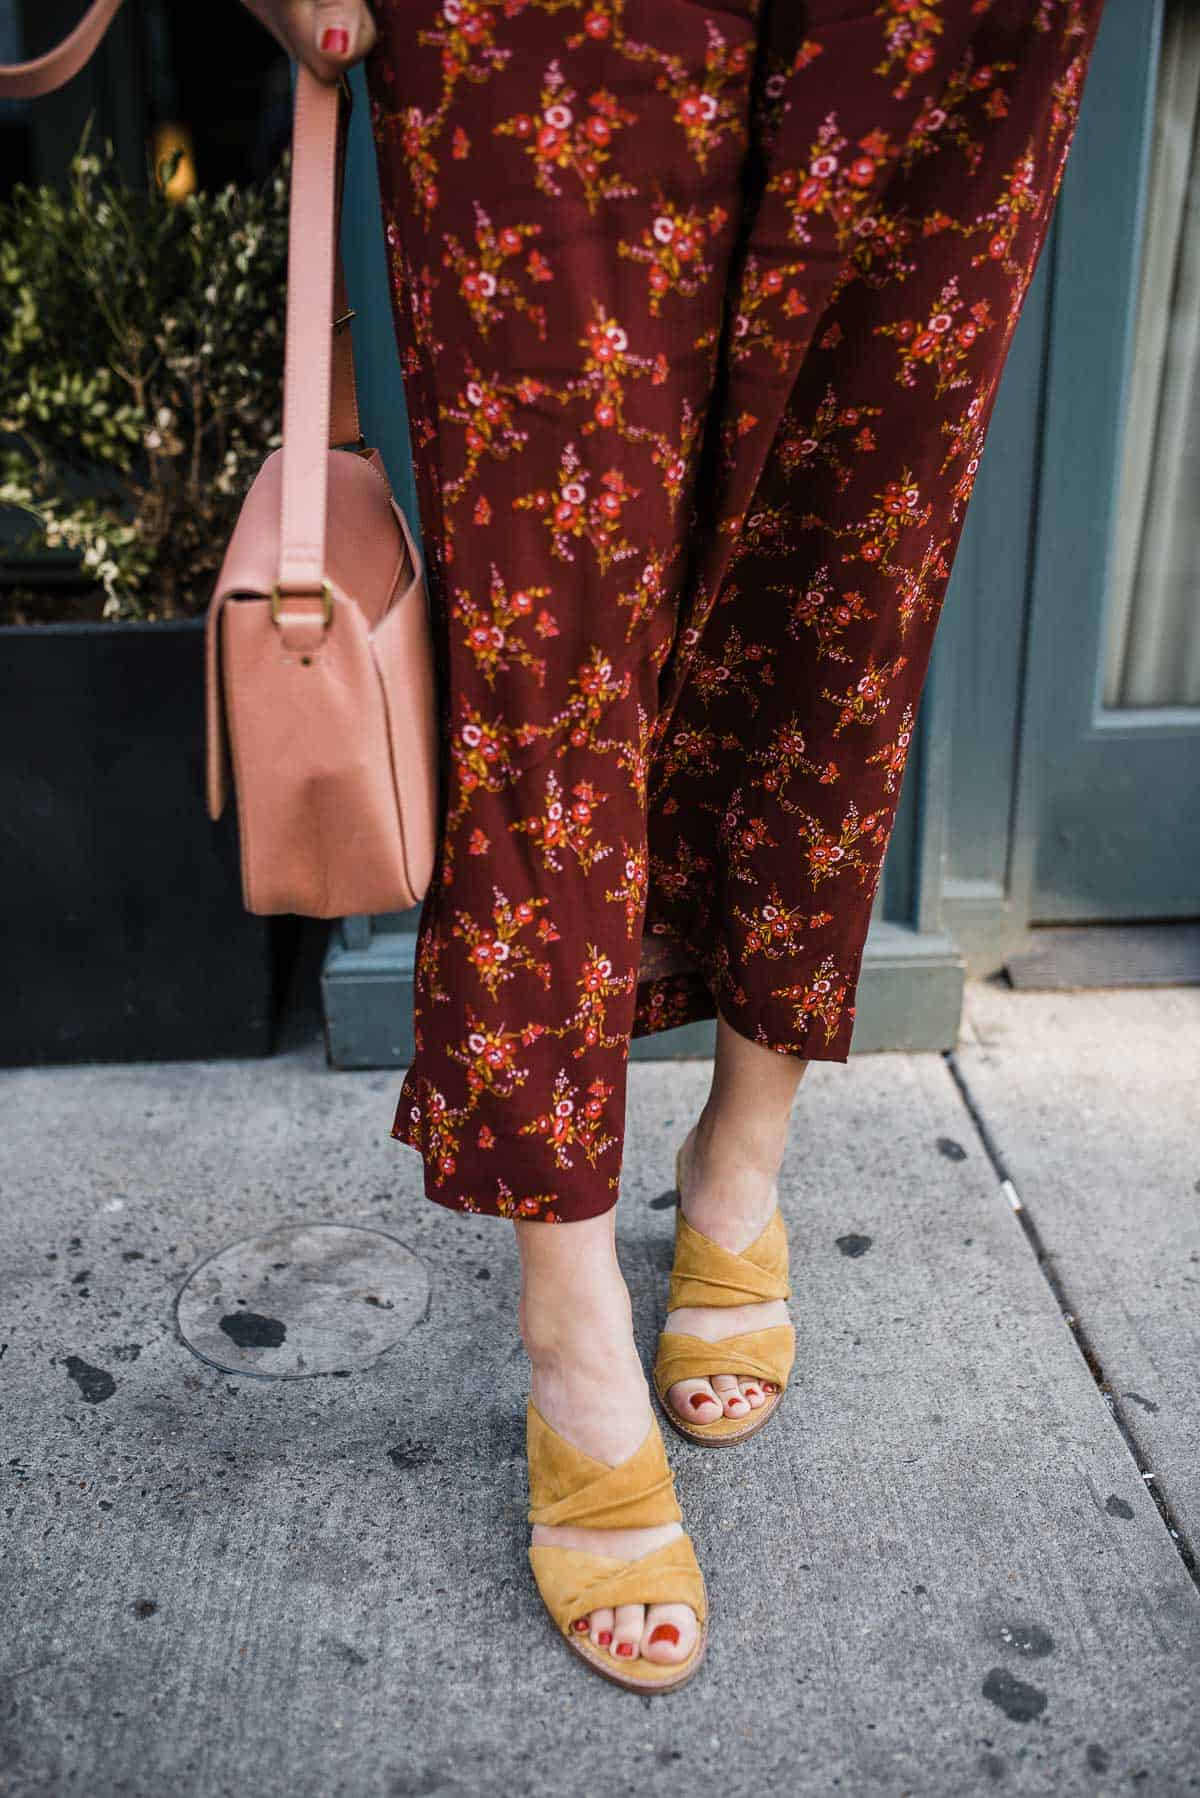 "MY STYLE VITA""S OUTFIT DETAILS: MADEWELL FLORAL JUMPSUIT, MADEWELL MUSTARD MULES, BLUSH HANDBAG"